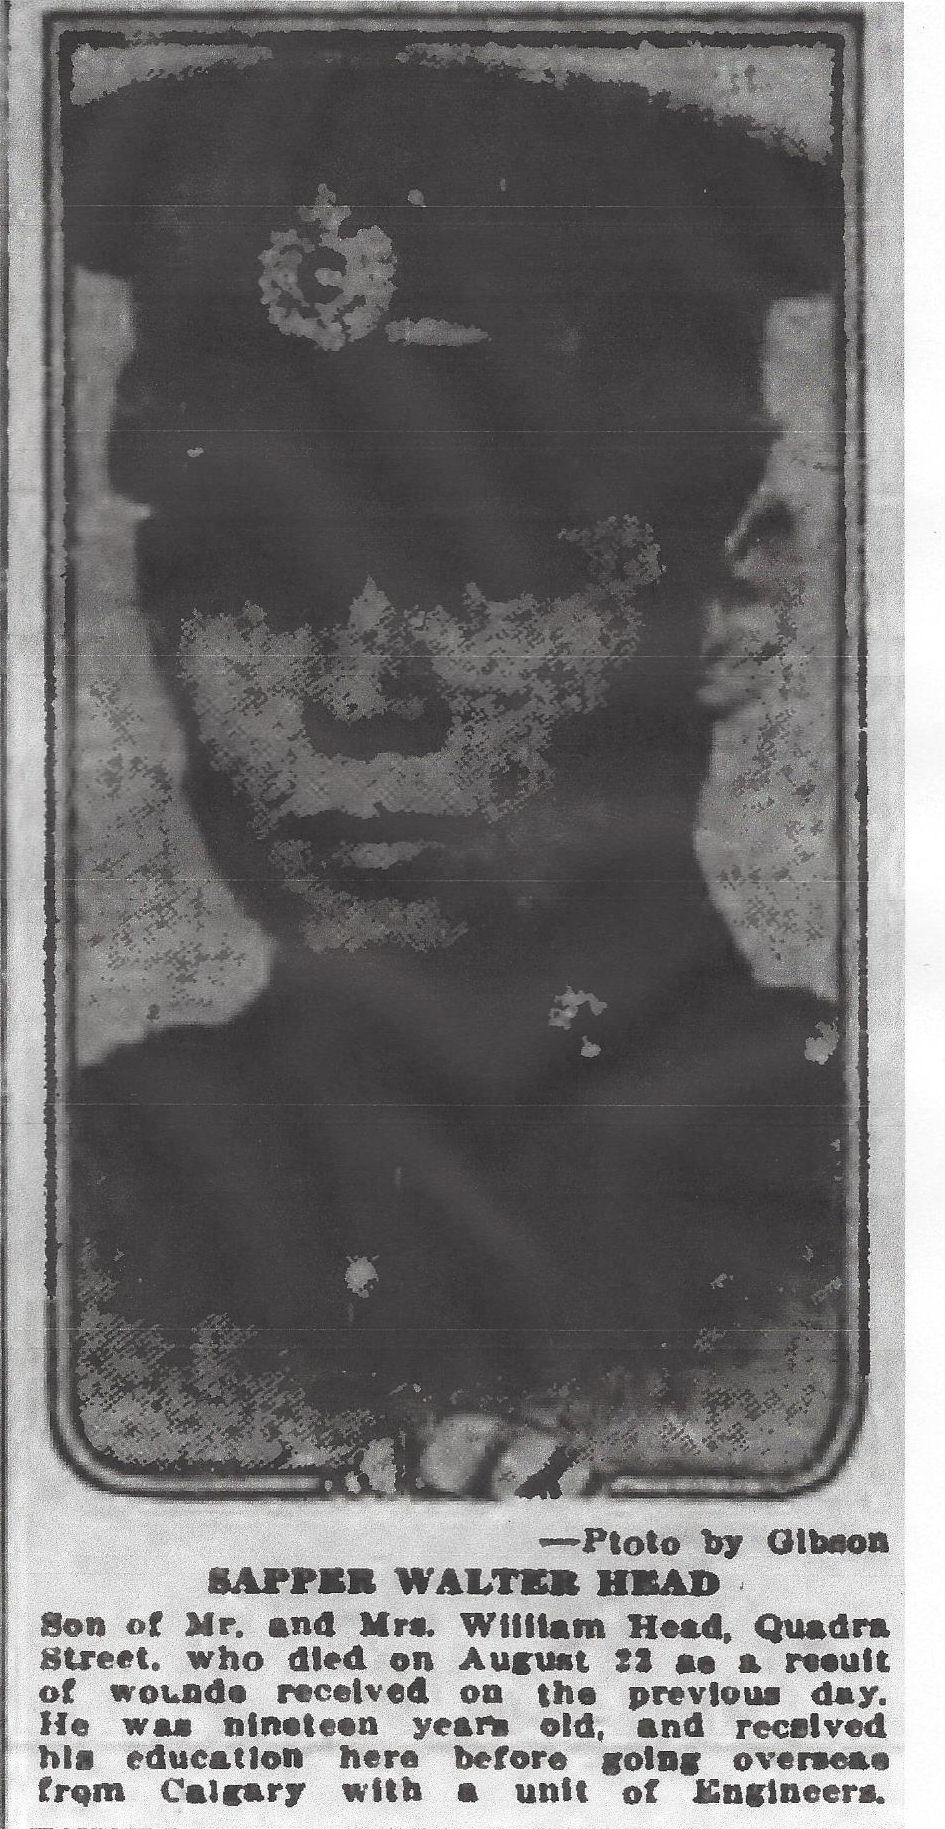 Newspaper Clipping– From the Daily Colonist of September 2, 1917. Image taken from web address of http://archive.org/stream/dailycolonist59y229uvic#page/n0/mode/1up